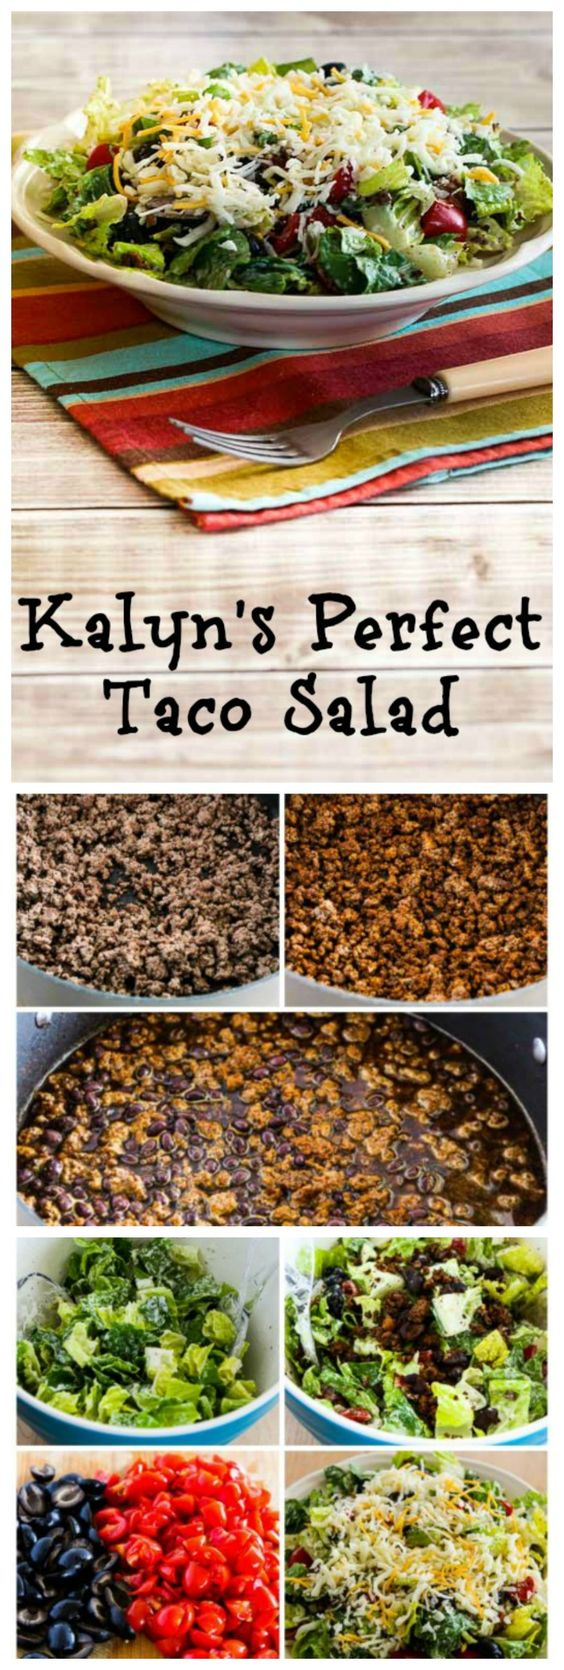 versions of Taco Salad, but this recipe for Kalyn's Perfect Taco Salad ...